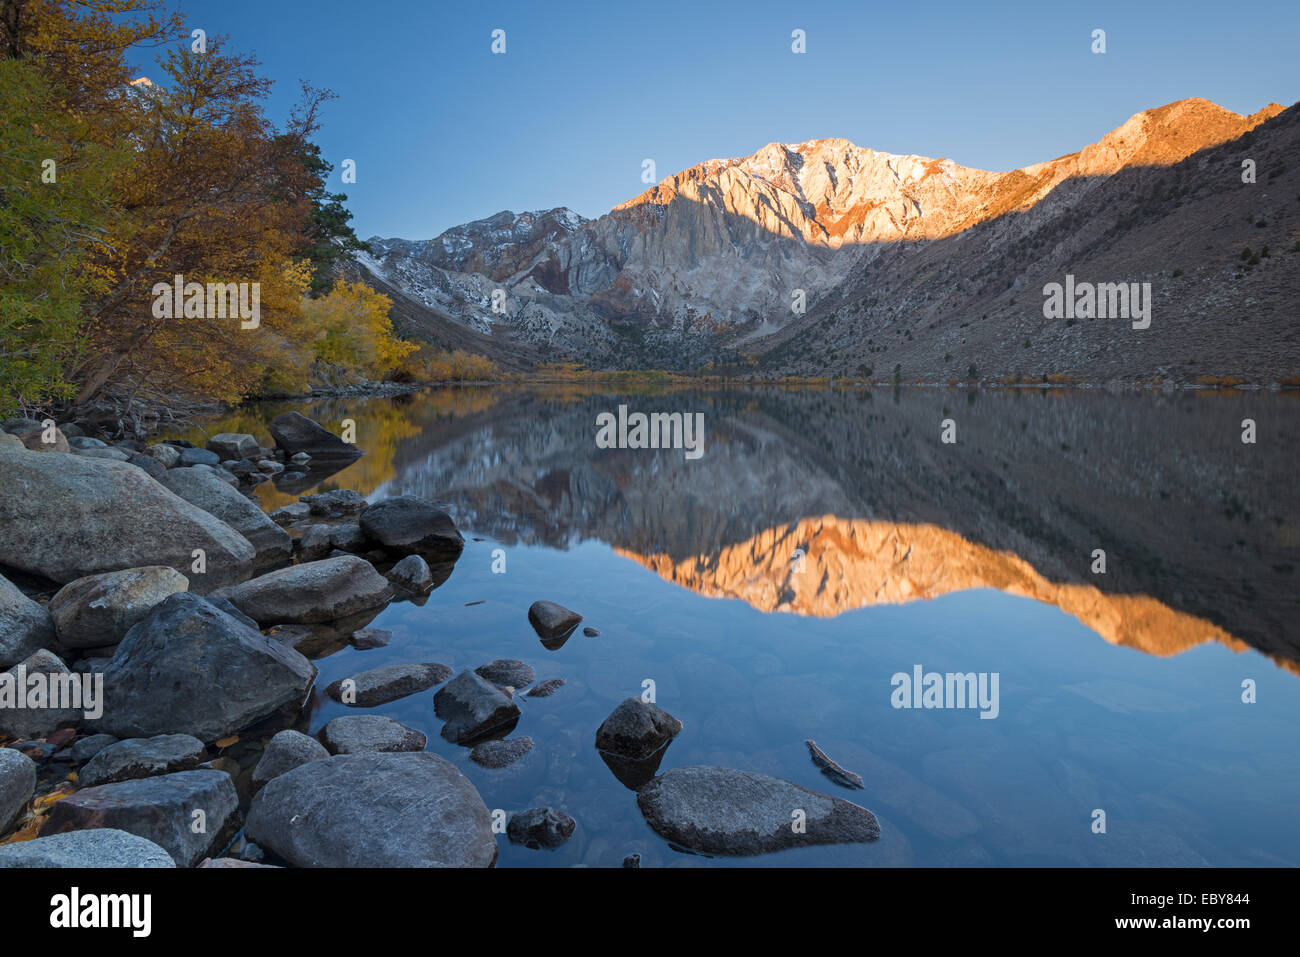 Fall colours around Convict Lake in the Eastern Sierra Mountains, California, USA. Autumn (October) 2013. - Stock Image